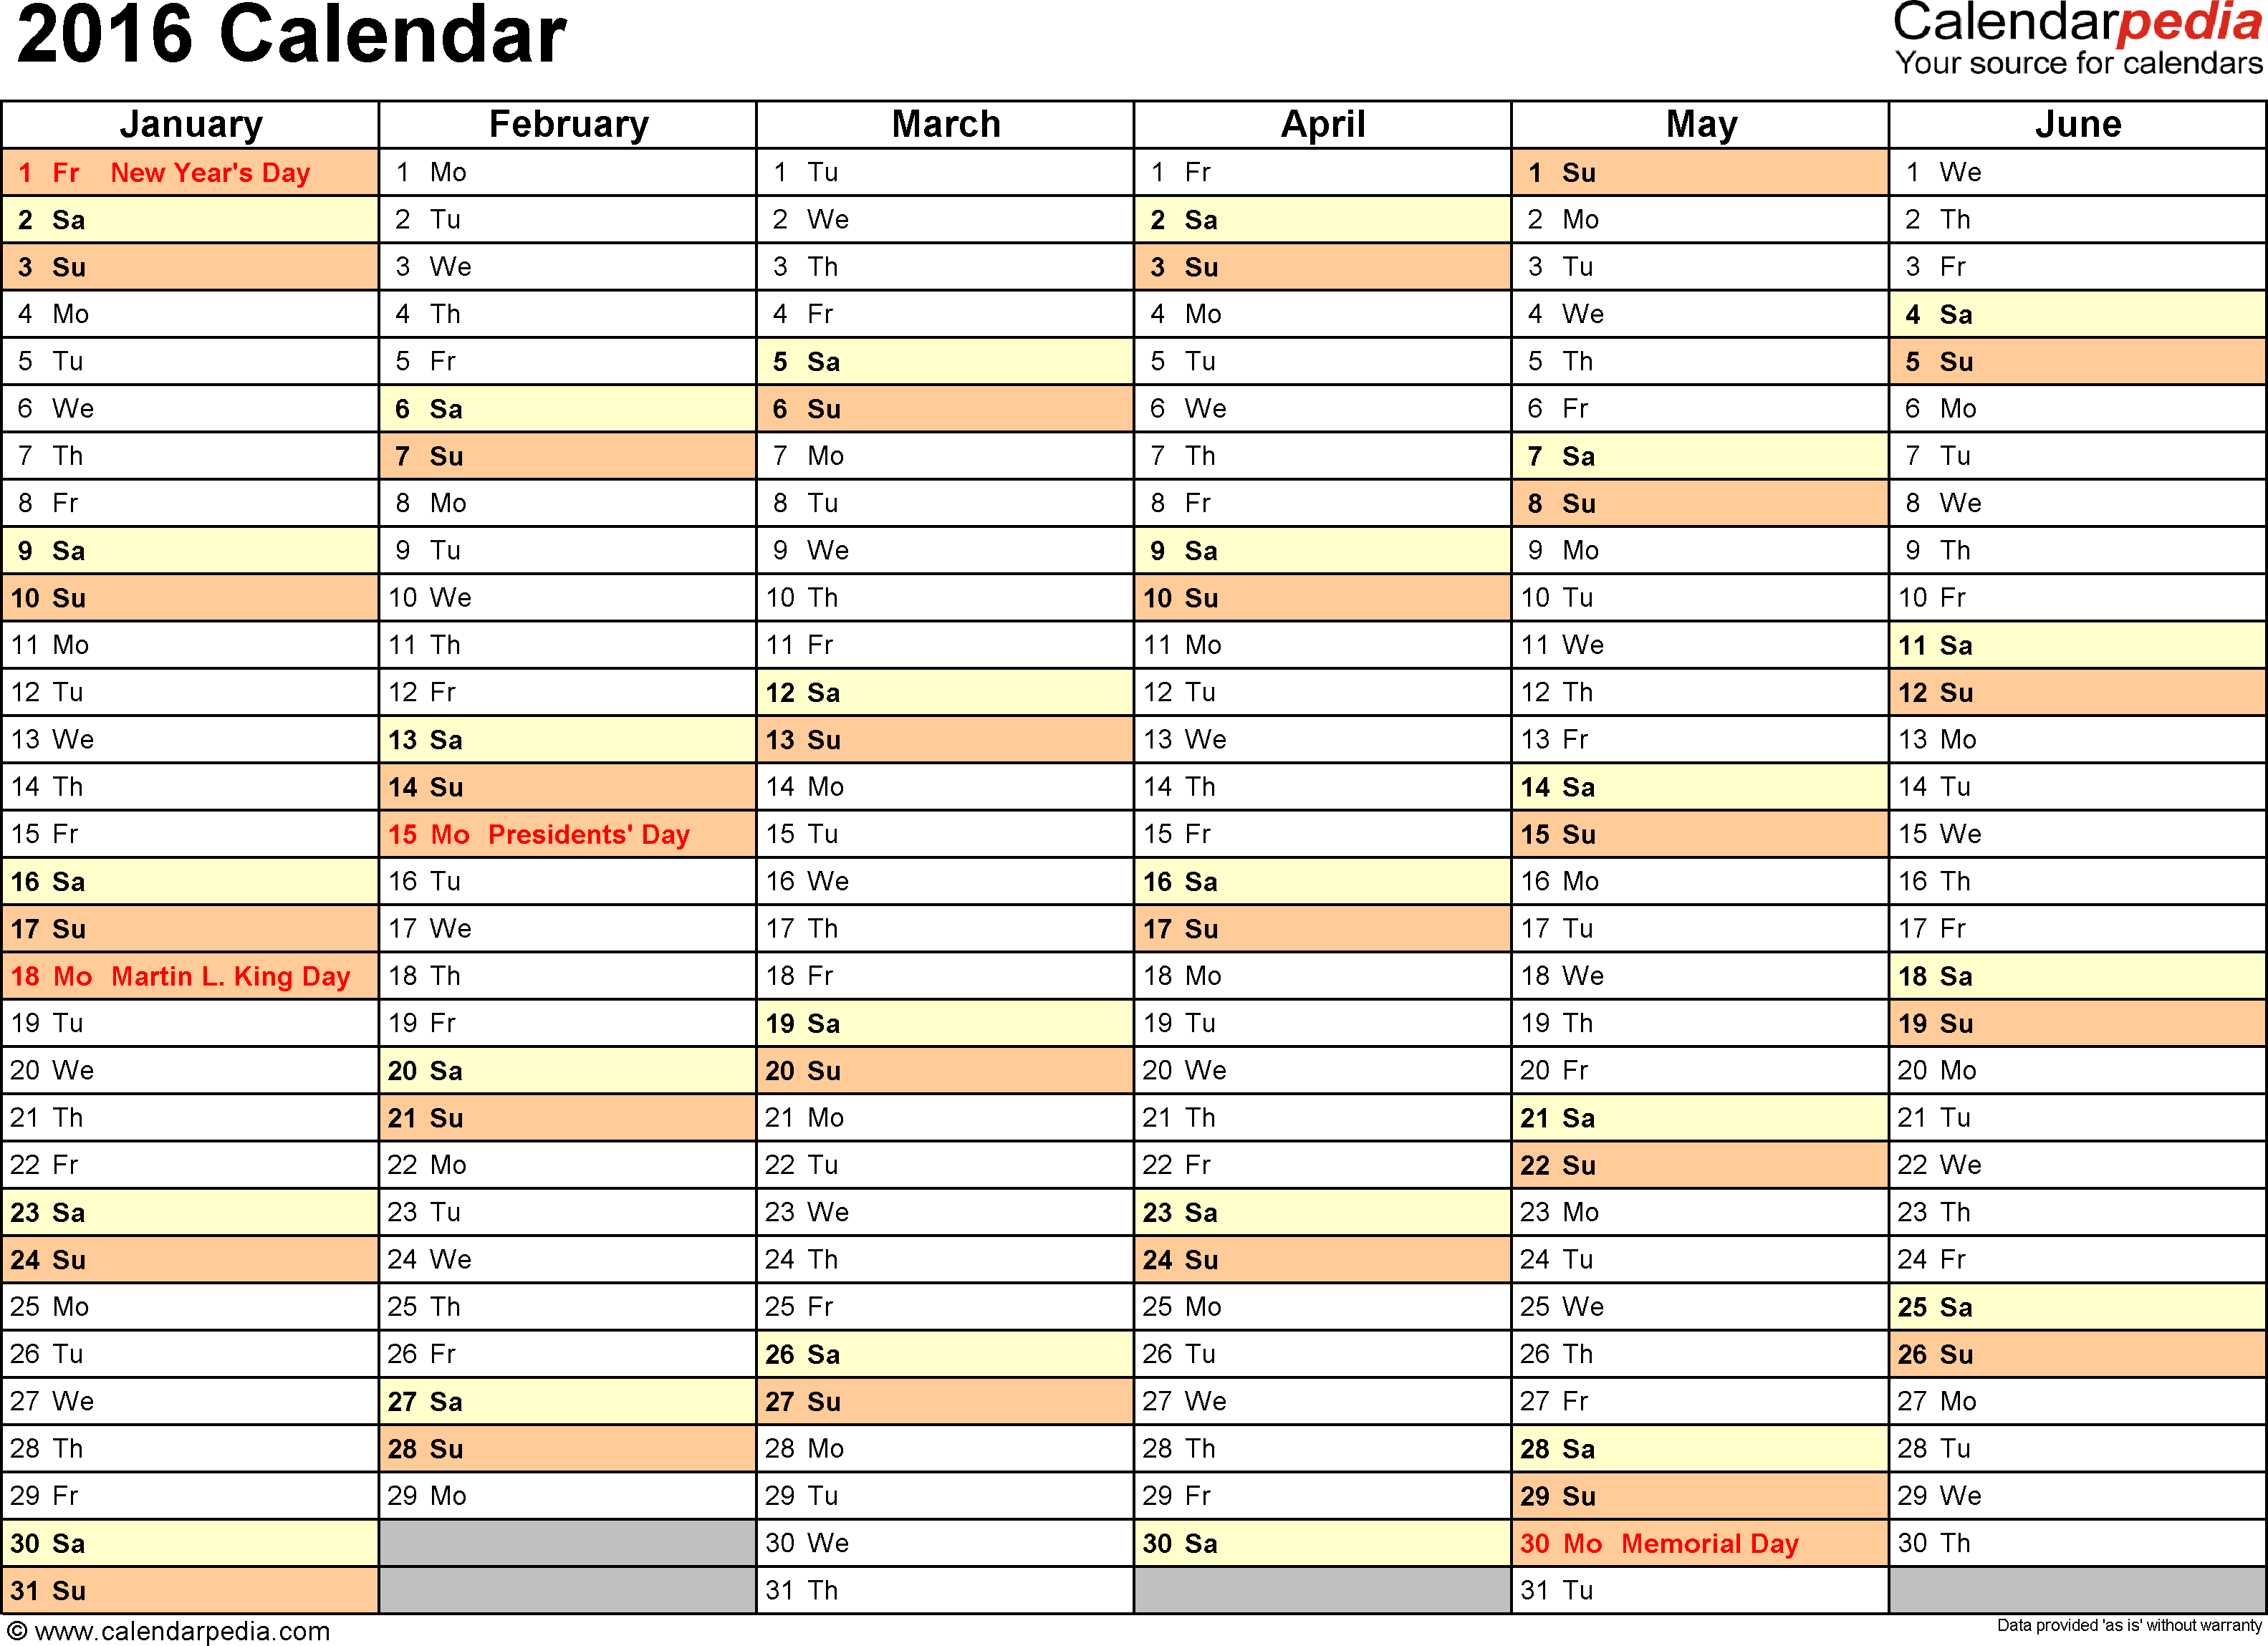 Ediblewildsus  Prepossessing  Calendar  Download  Free Printable Excel Templates Xls With Fetching Template   Calendar For Excel Months Horizontally  Pages Landscape Orientation With Breathtaking Add Series Name To Excel Chart Also How To Update Microsoft Excel In Addition Create Graph On Excel And Formula To Combine Two Cells In Excel As Well As If Or If Excel Additionally Pooled Variance Excel From Calendarpediacom With Ediblewildsus  Fetching  Calendar  Download  Free Printable Excel Templates Xls With Breathtaking Template   Calendar For Excel Months Horizontally  Pages Landscape Orientation And Prepossessing Add Series Name To Excel Chart Also How To Update Microsoft Excel In Addition Create Graph On Excel From Calendarpediacom